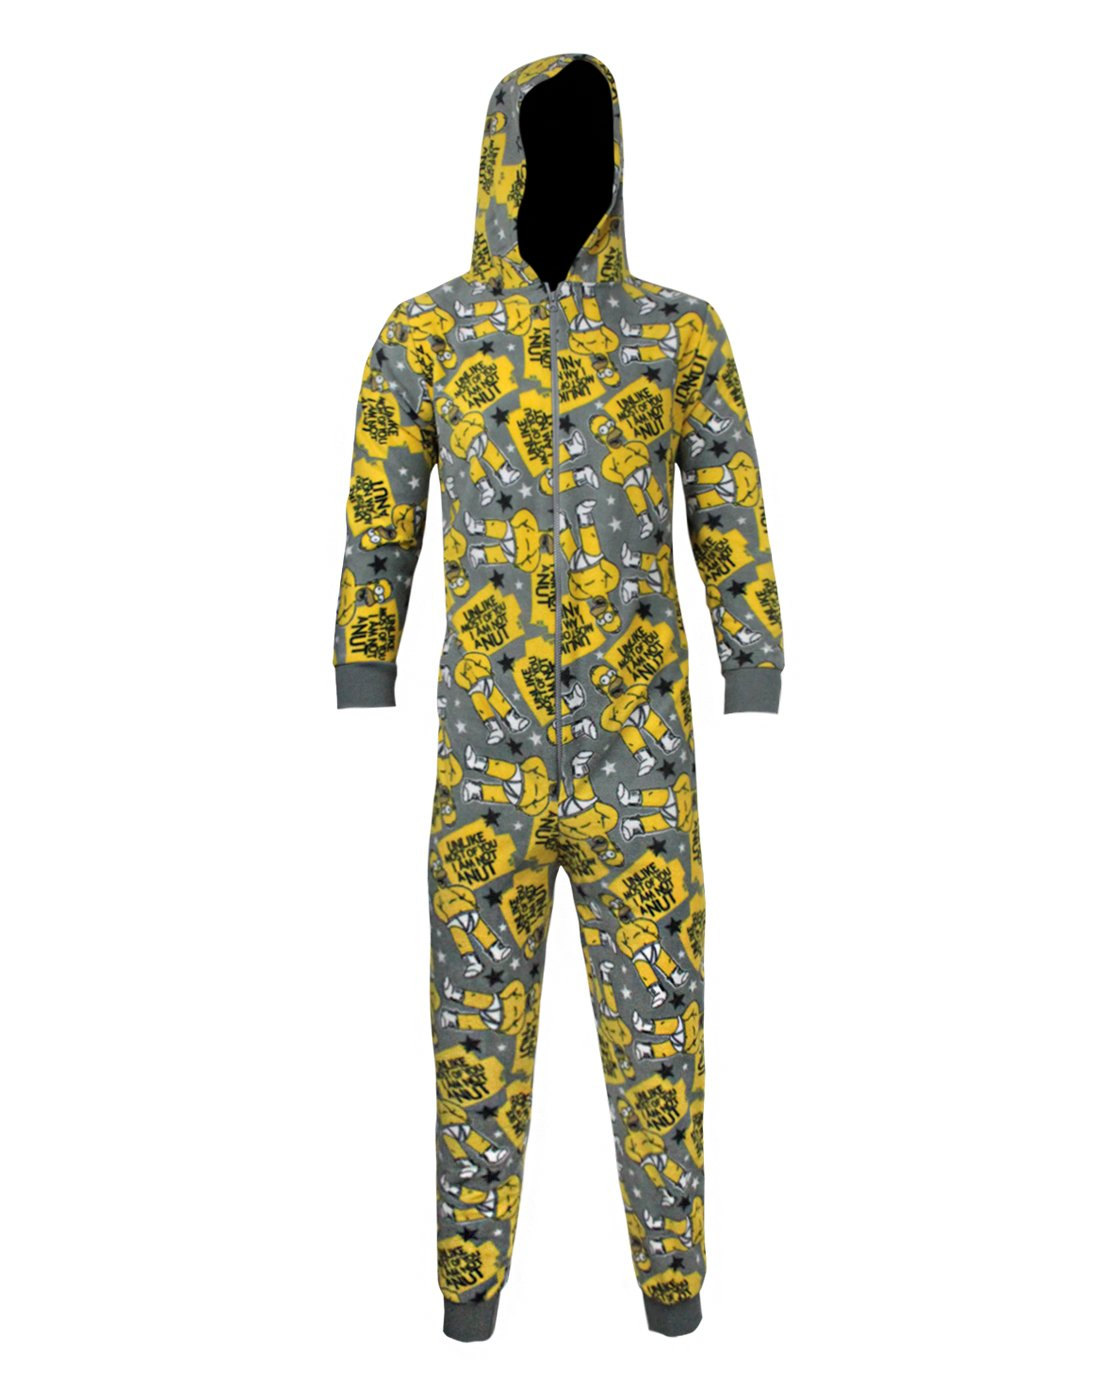 Official Simpsons Women's Hooded Onesie